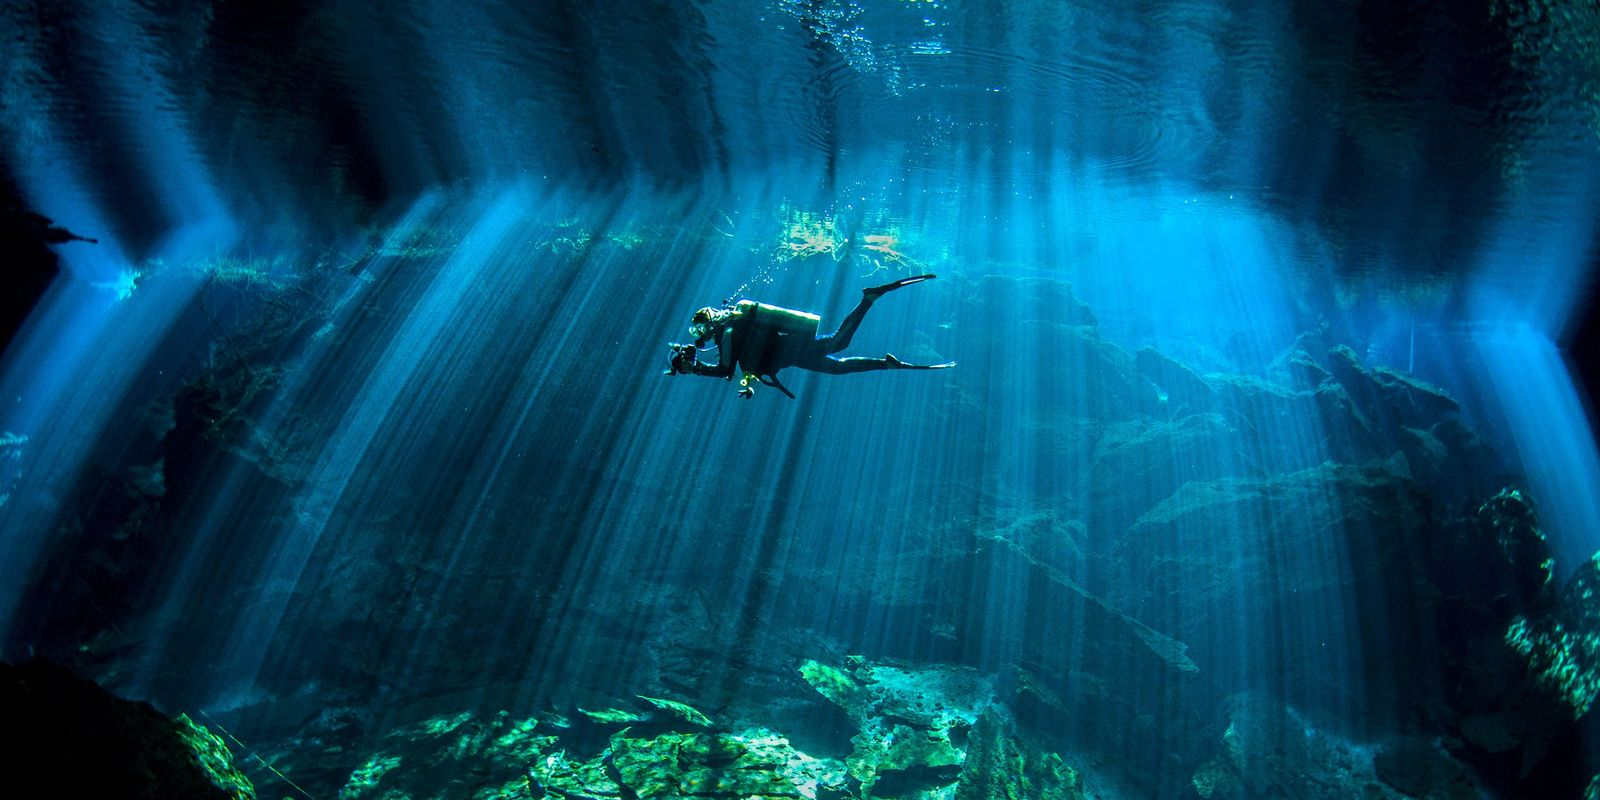 See Stunning Pictures That Take You Under the Sea